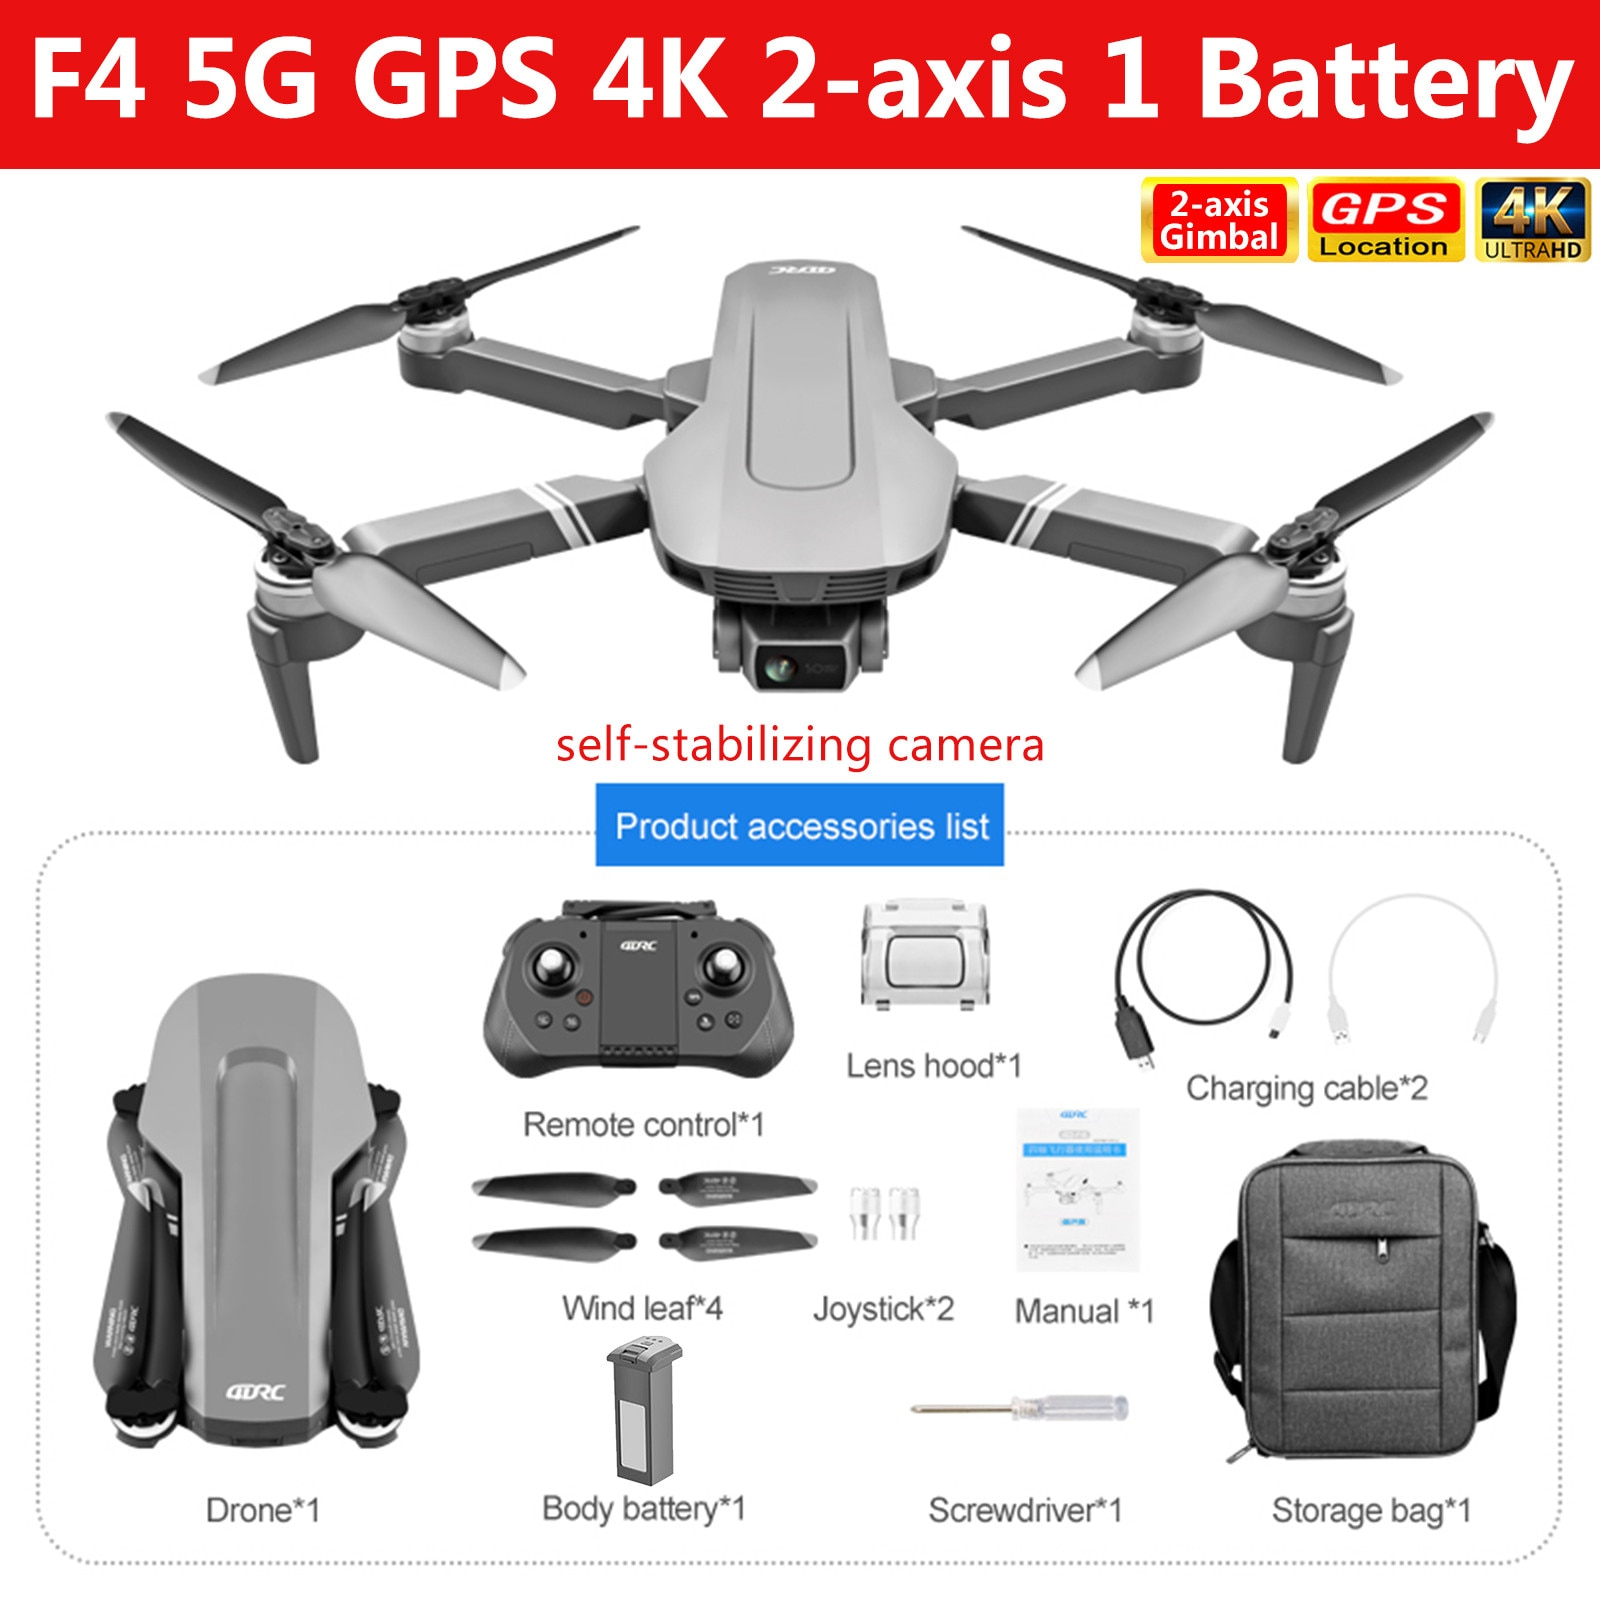 H0b67da21456647fd810163a7155a9dc77 - F4 Drone GPS 5G 4k HD camera Drone Mechanical 2-Axis Gimbal Camera Brushless Power Flight 25M RC Drone Kid Toy GIft